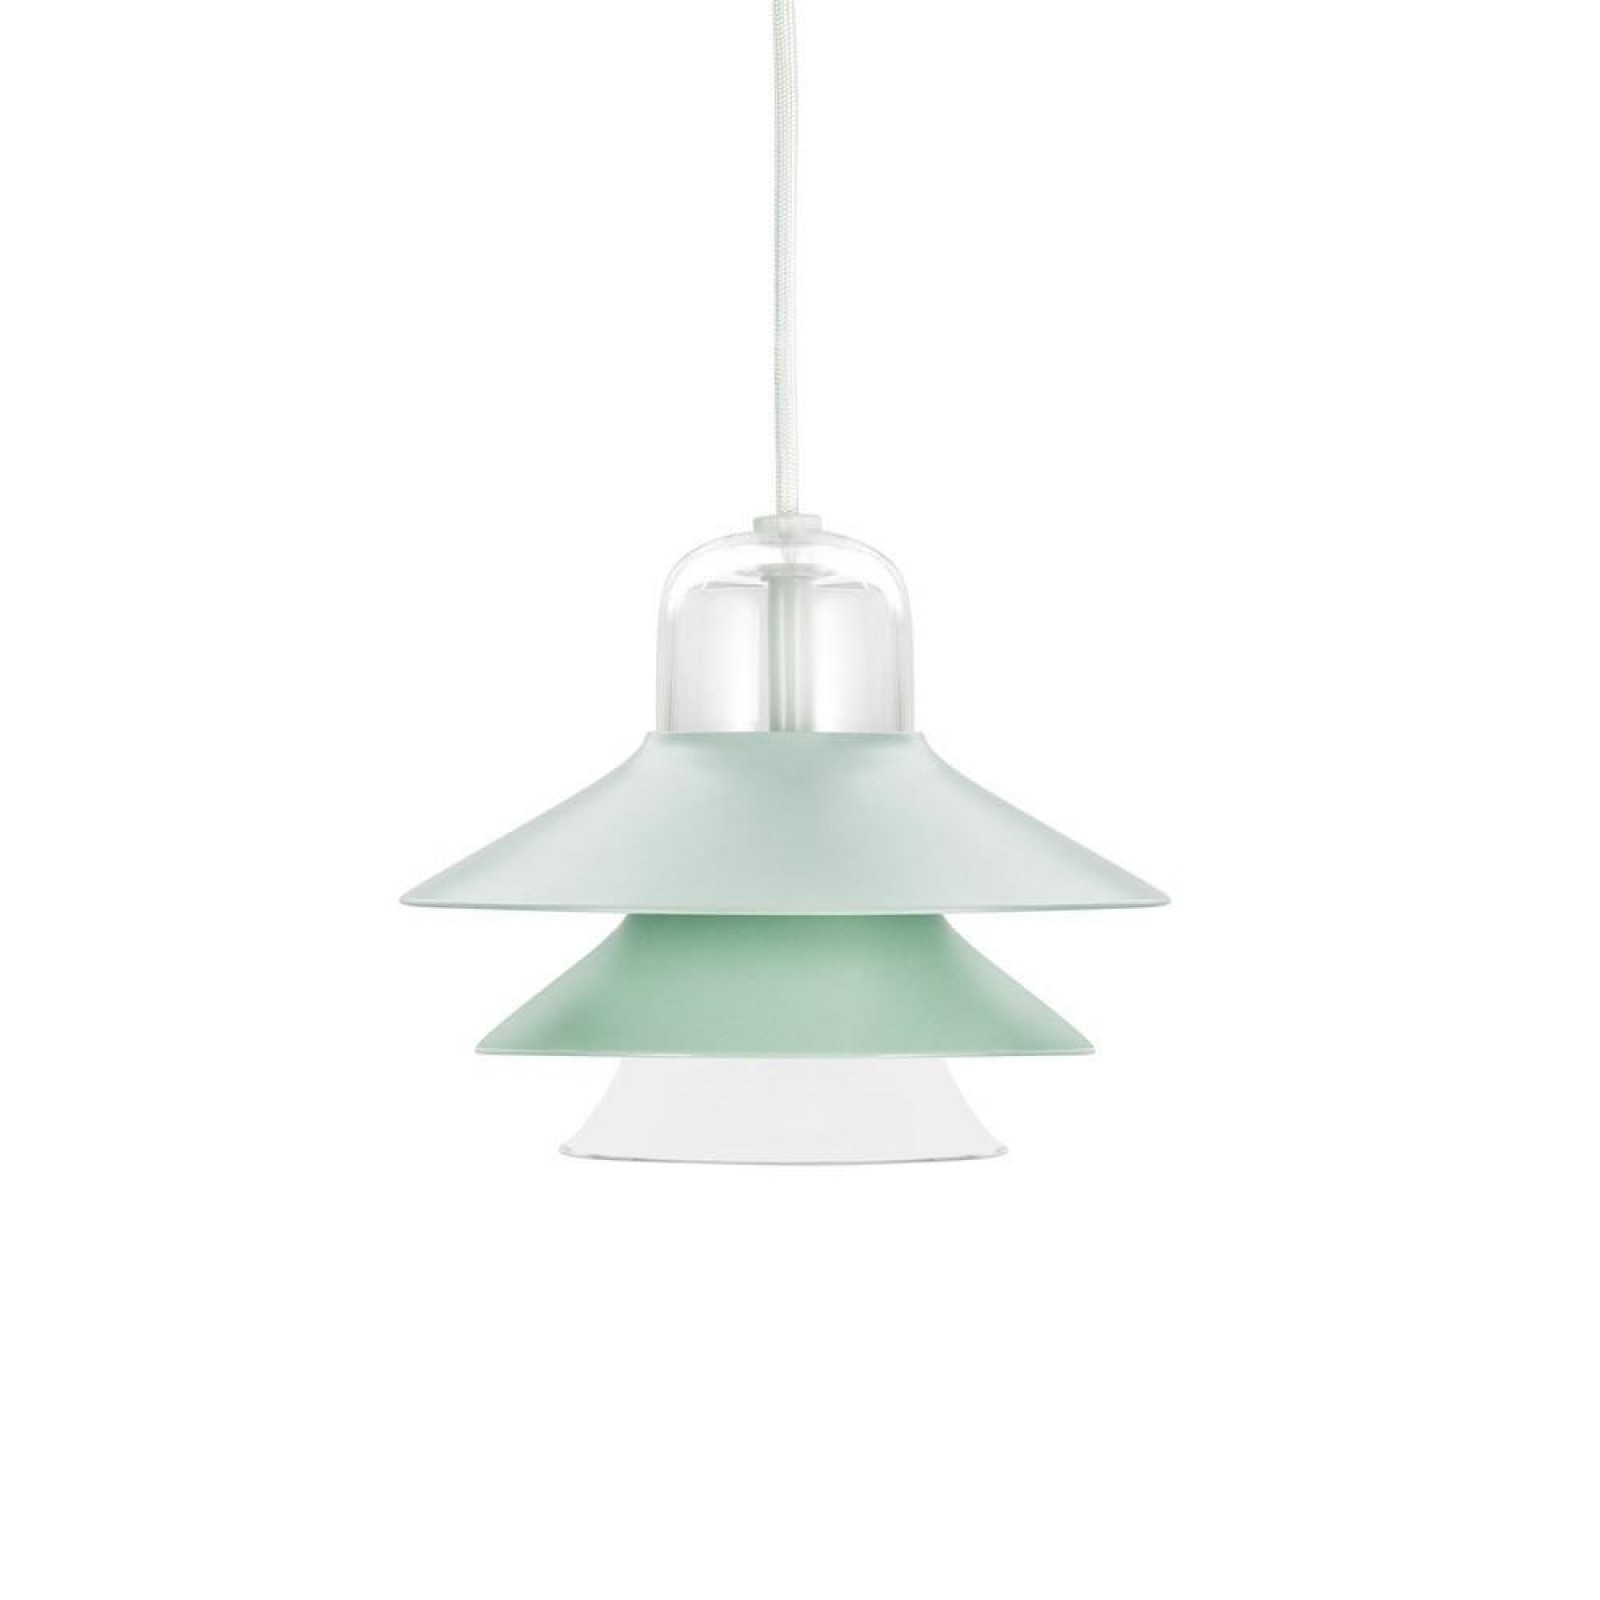 Ikono Lamp Small - Normann Copenhagen